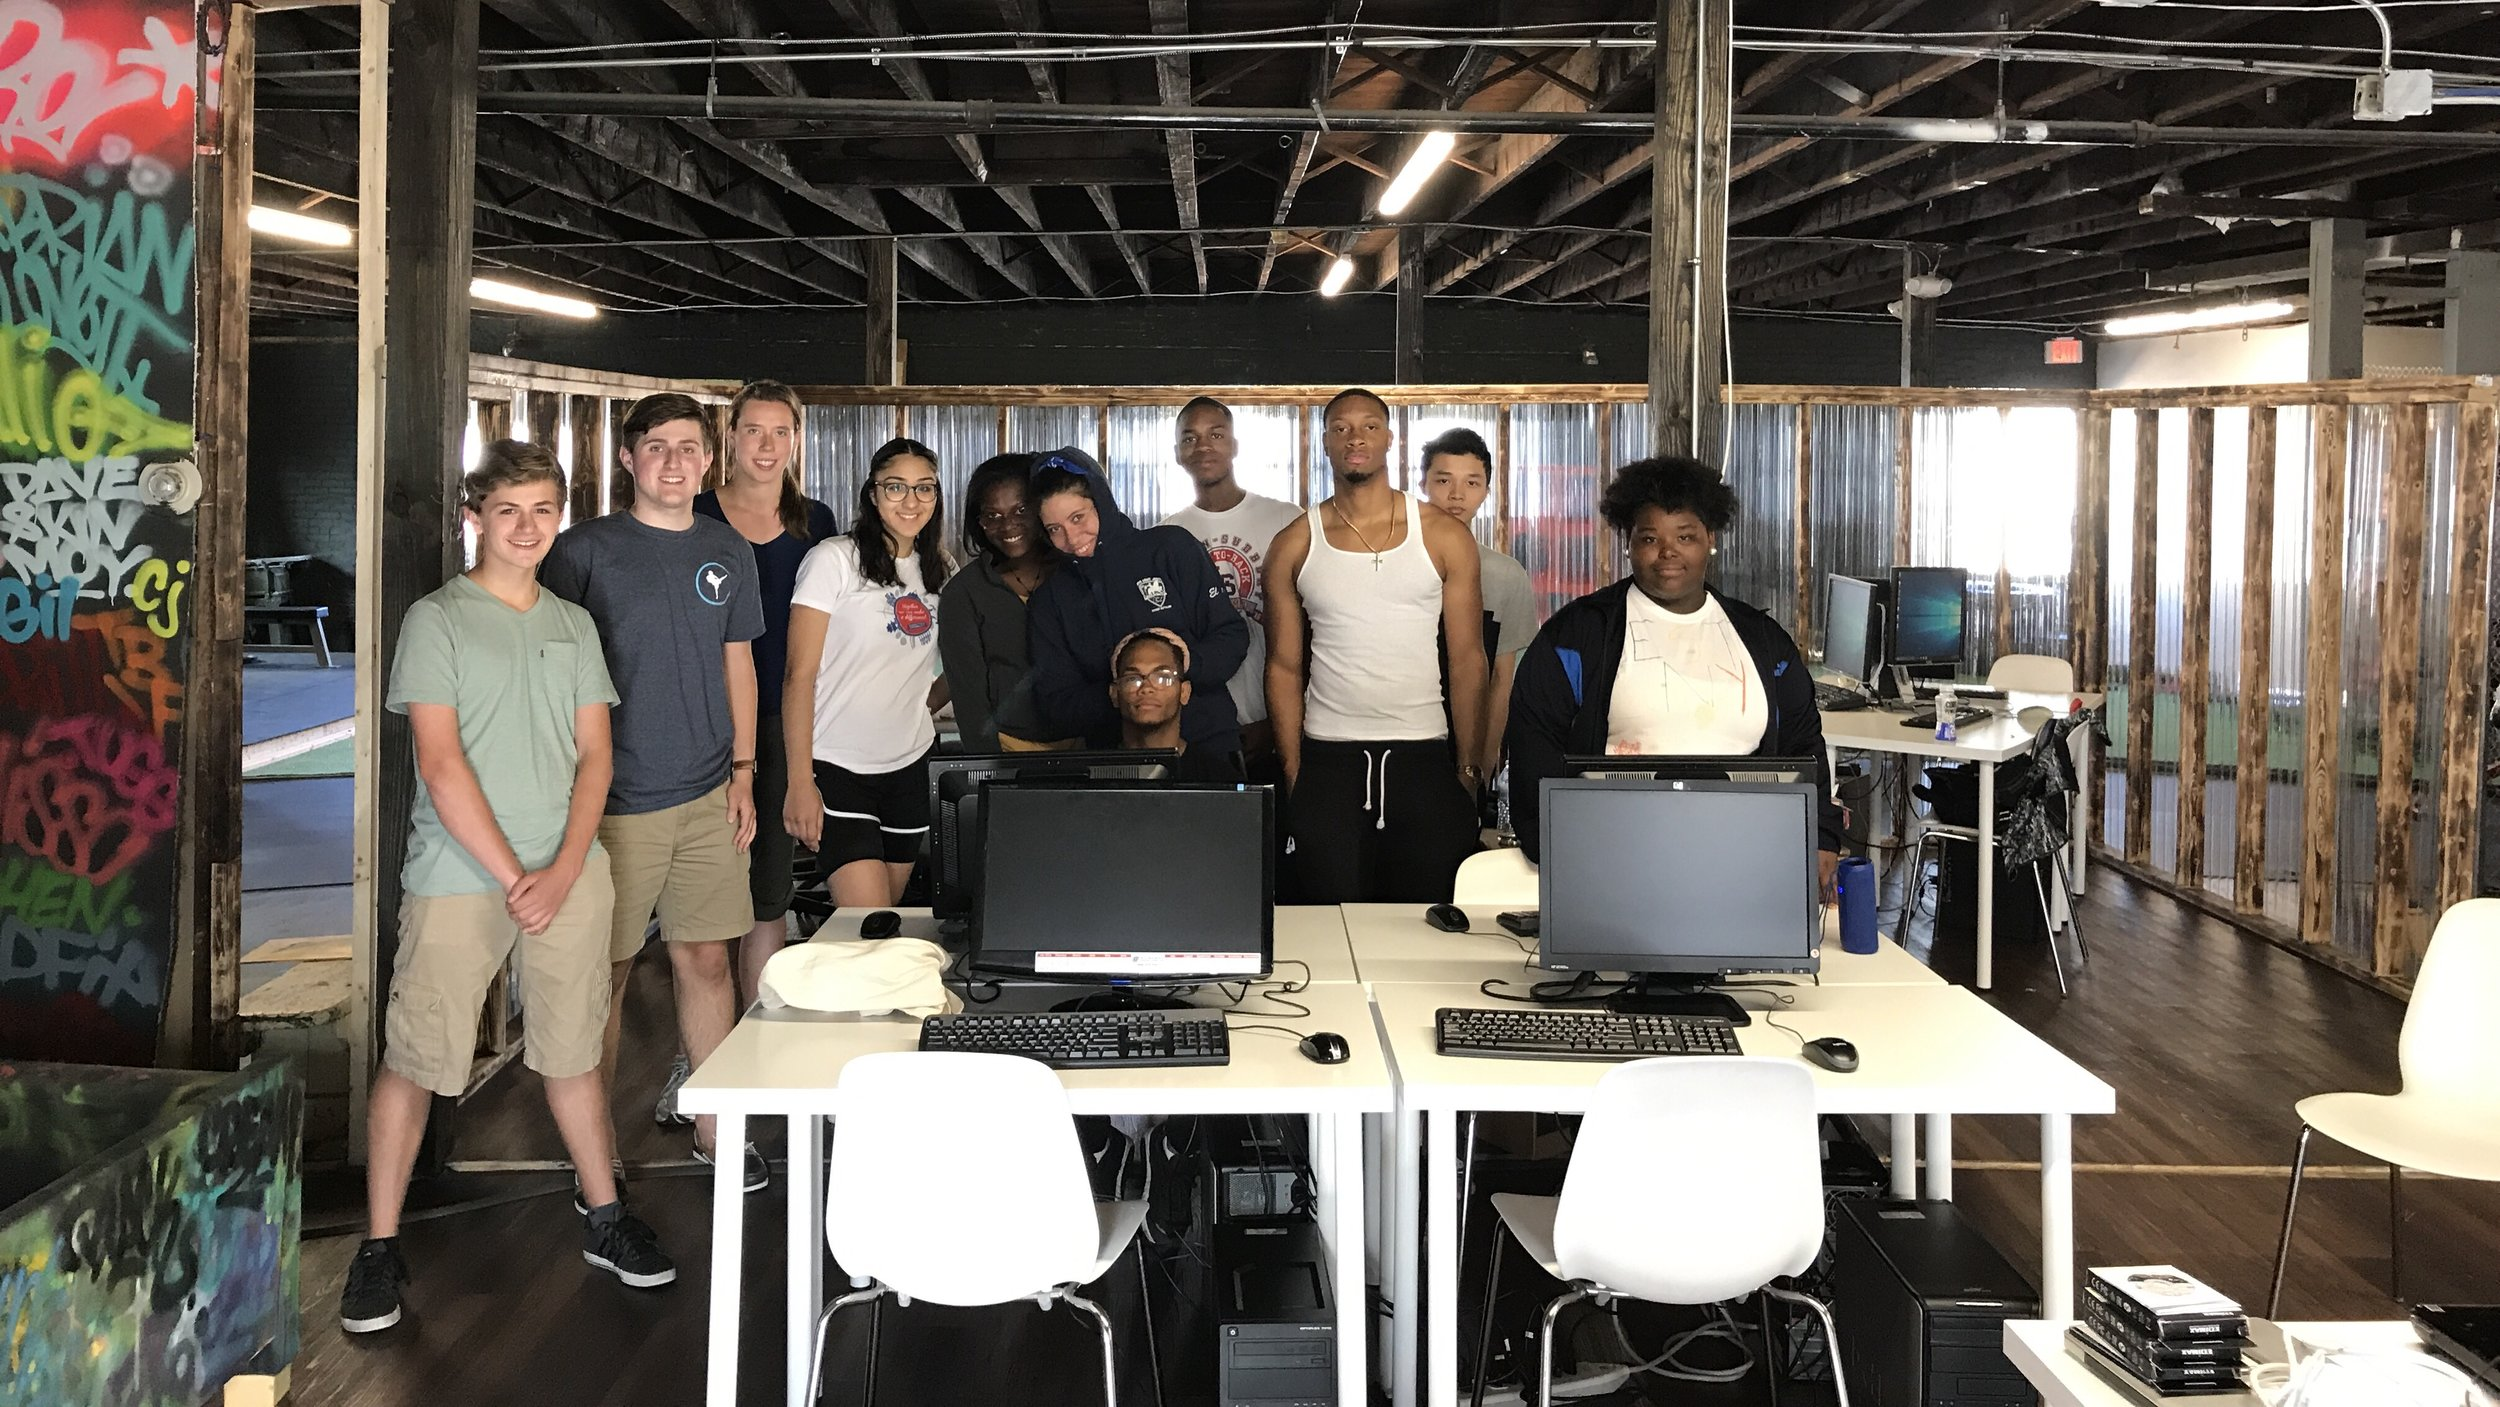 5 refurbished computers donated and installed at Non-Profit Level Ground MMA to help inner-city youth prepare for GED and job training.